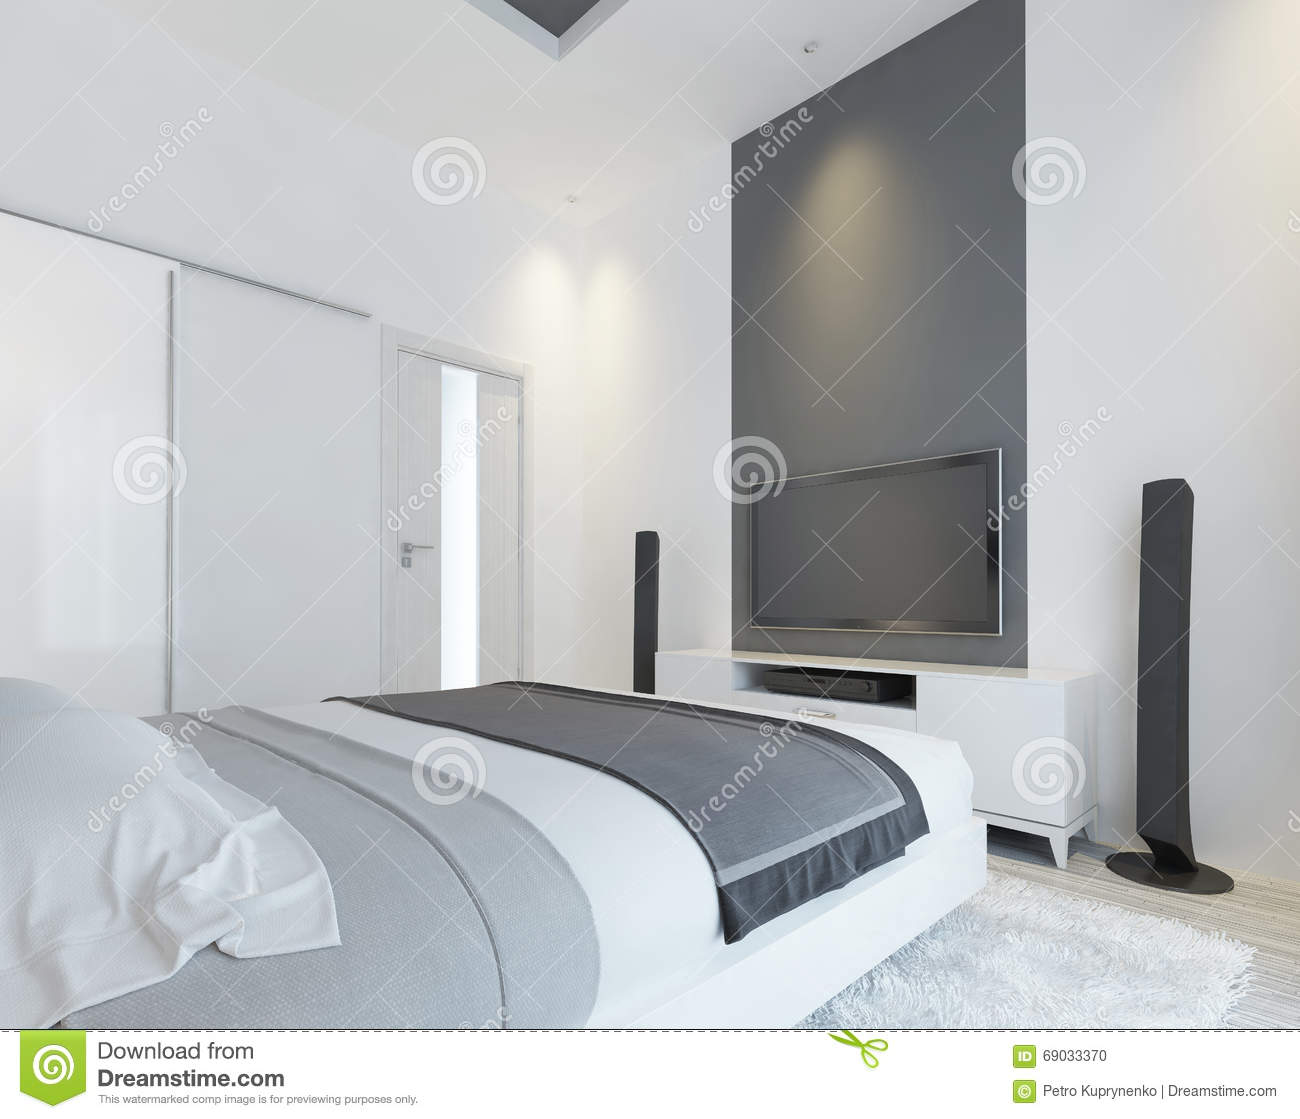 TV console with speakers in the modern bedroom. TV Console With Speakers In The Modern Bedroom  Stock Illustration